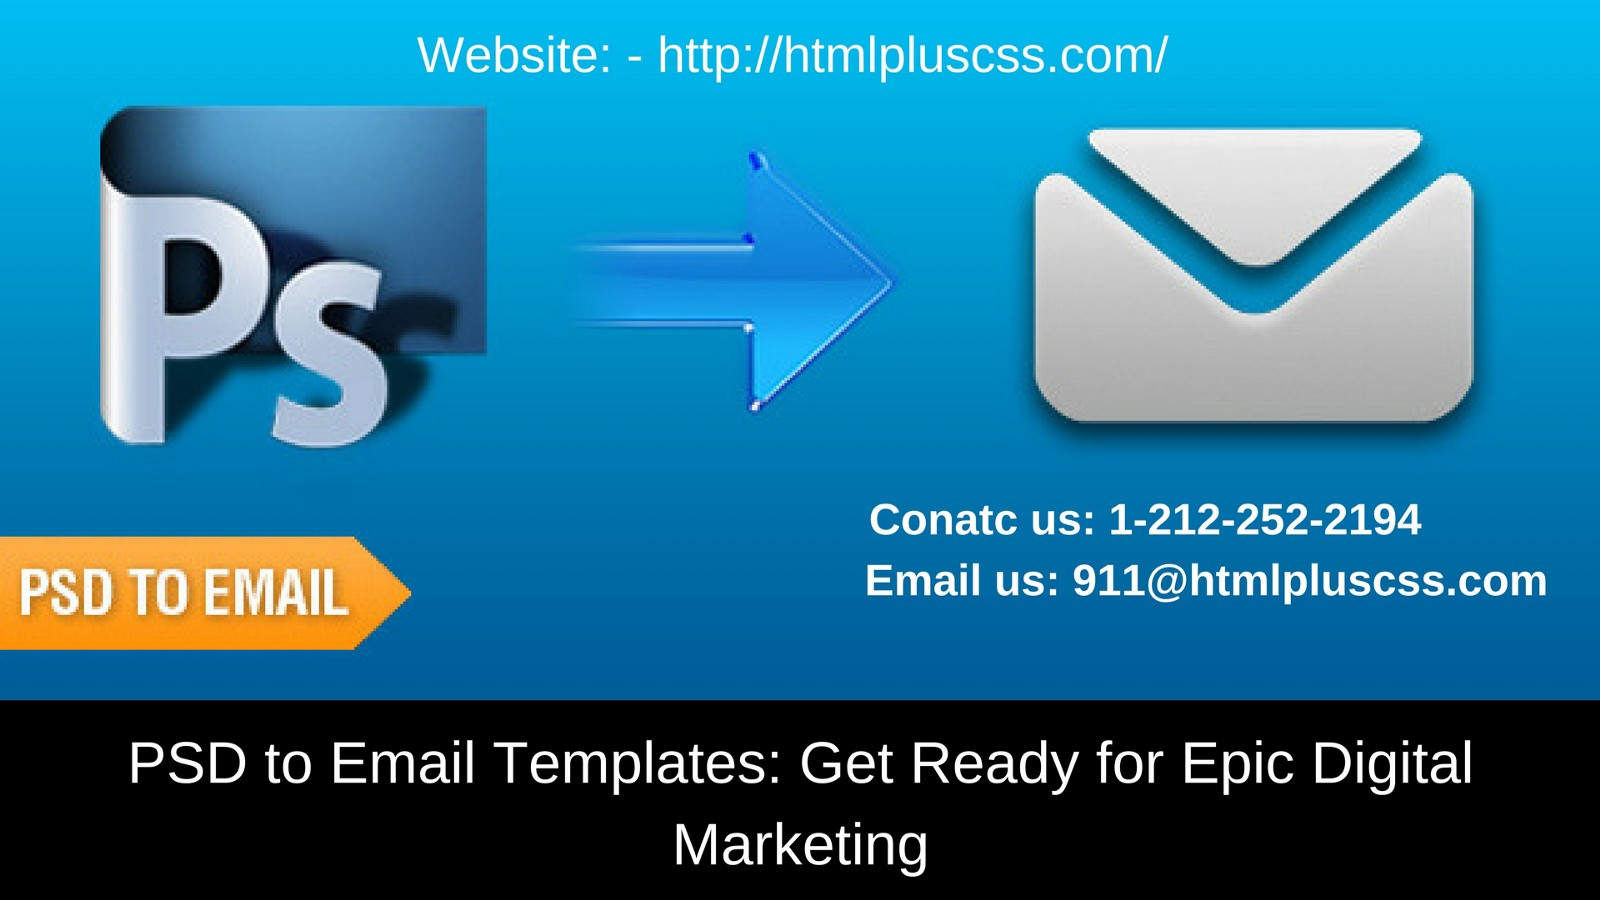 PSD To Email Templates Get Ready For Epic Digital Marketing - Social media marketing email templates